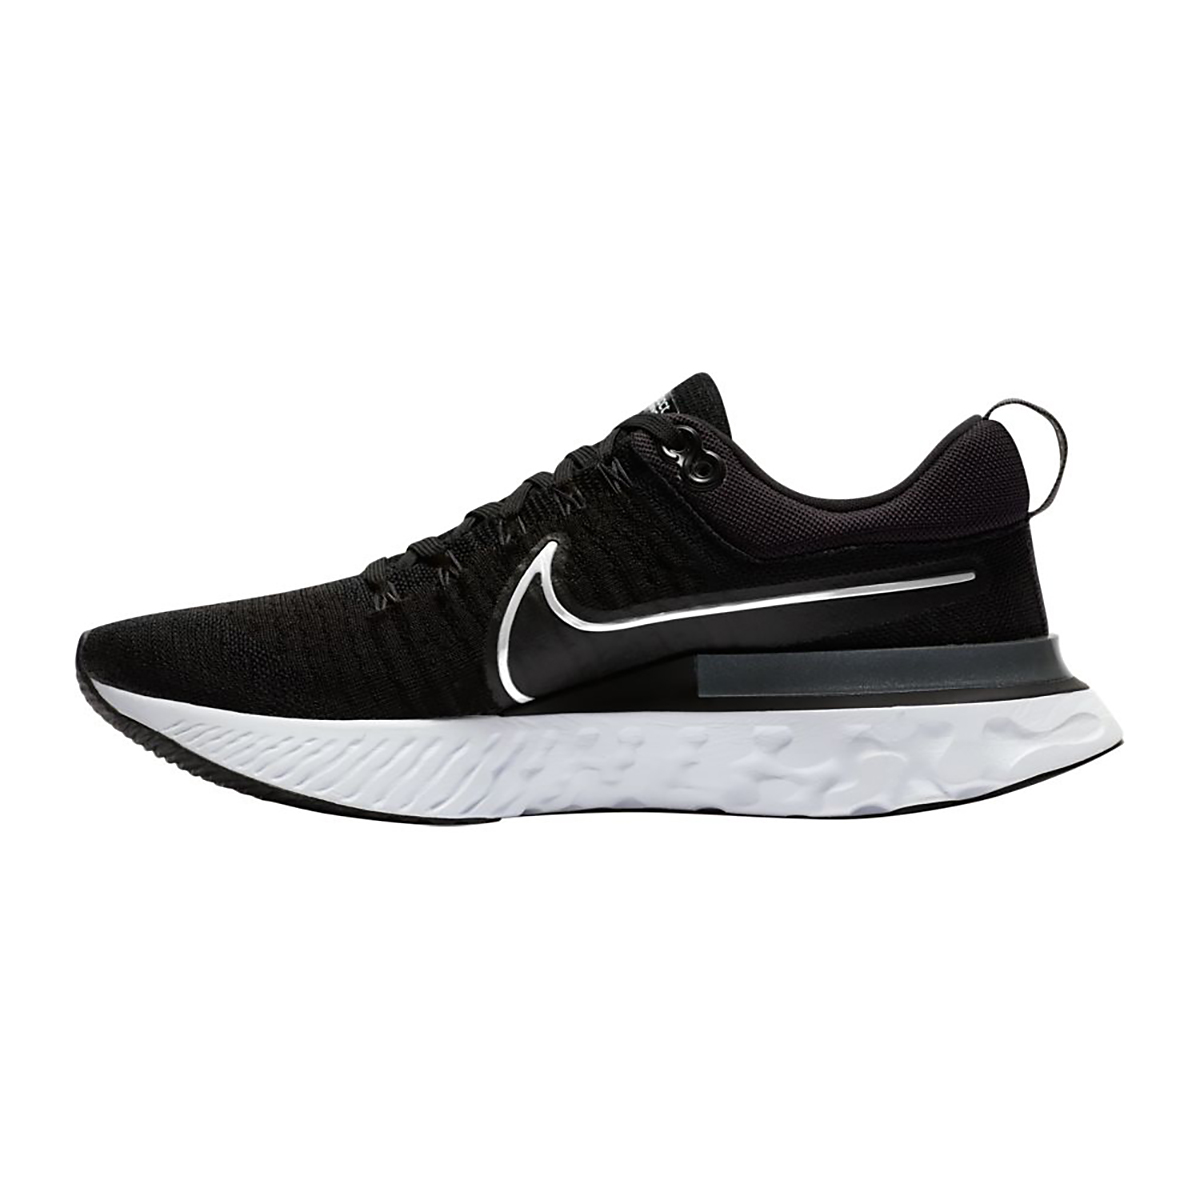 Men's Nike React Infinity Run Flyknit 2 Running Shoe - Color: Black/White/Iron Grey - Size: 6 - Width: Regular, Black/White/Iron Grey, large, image 2